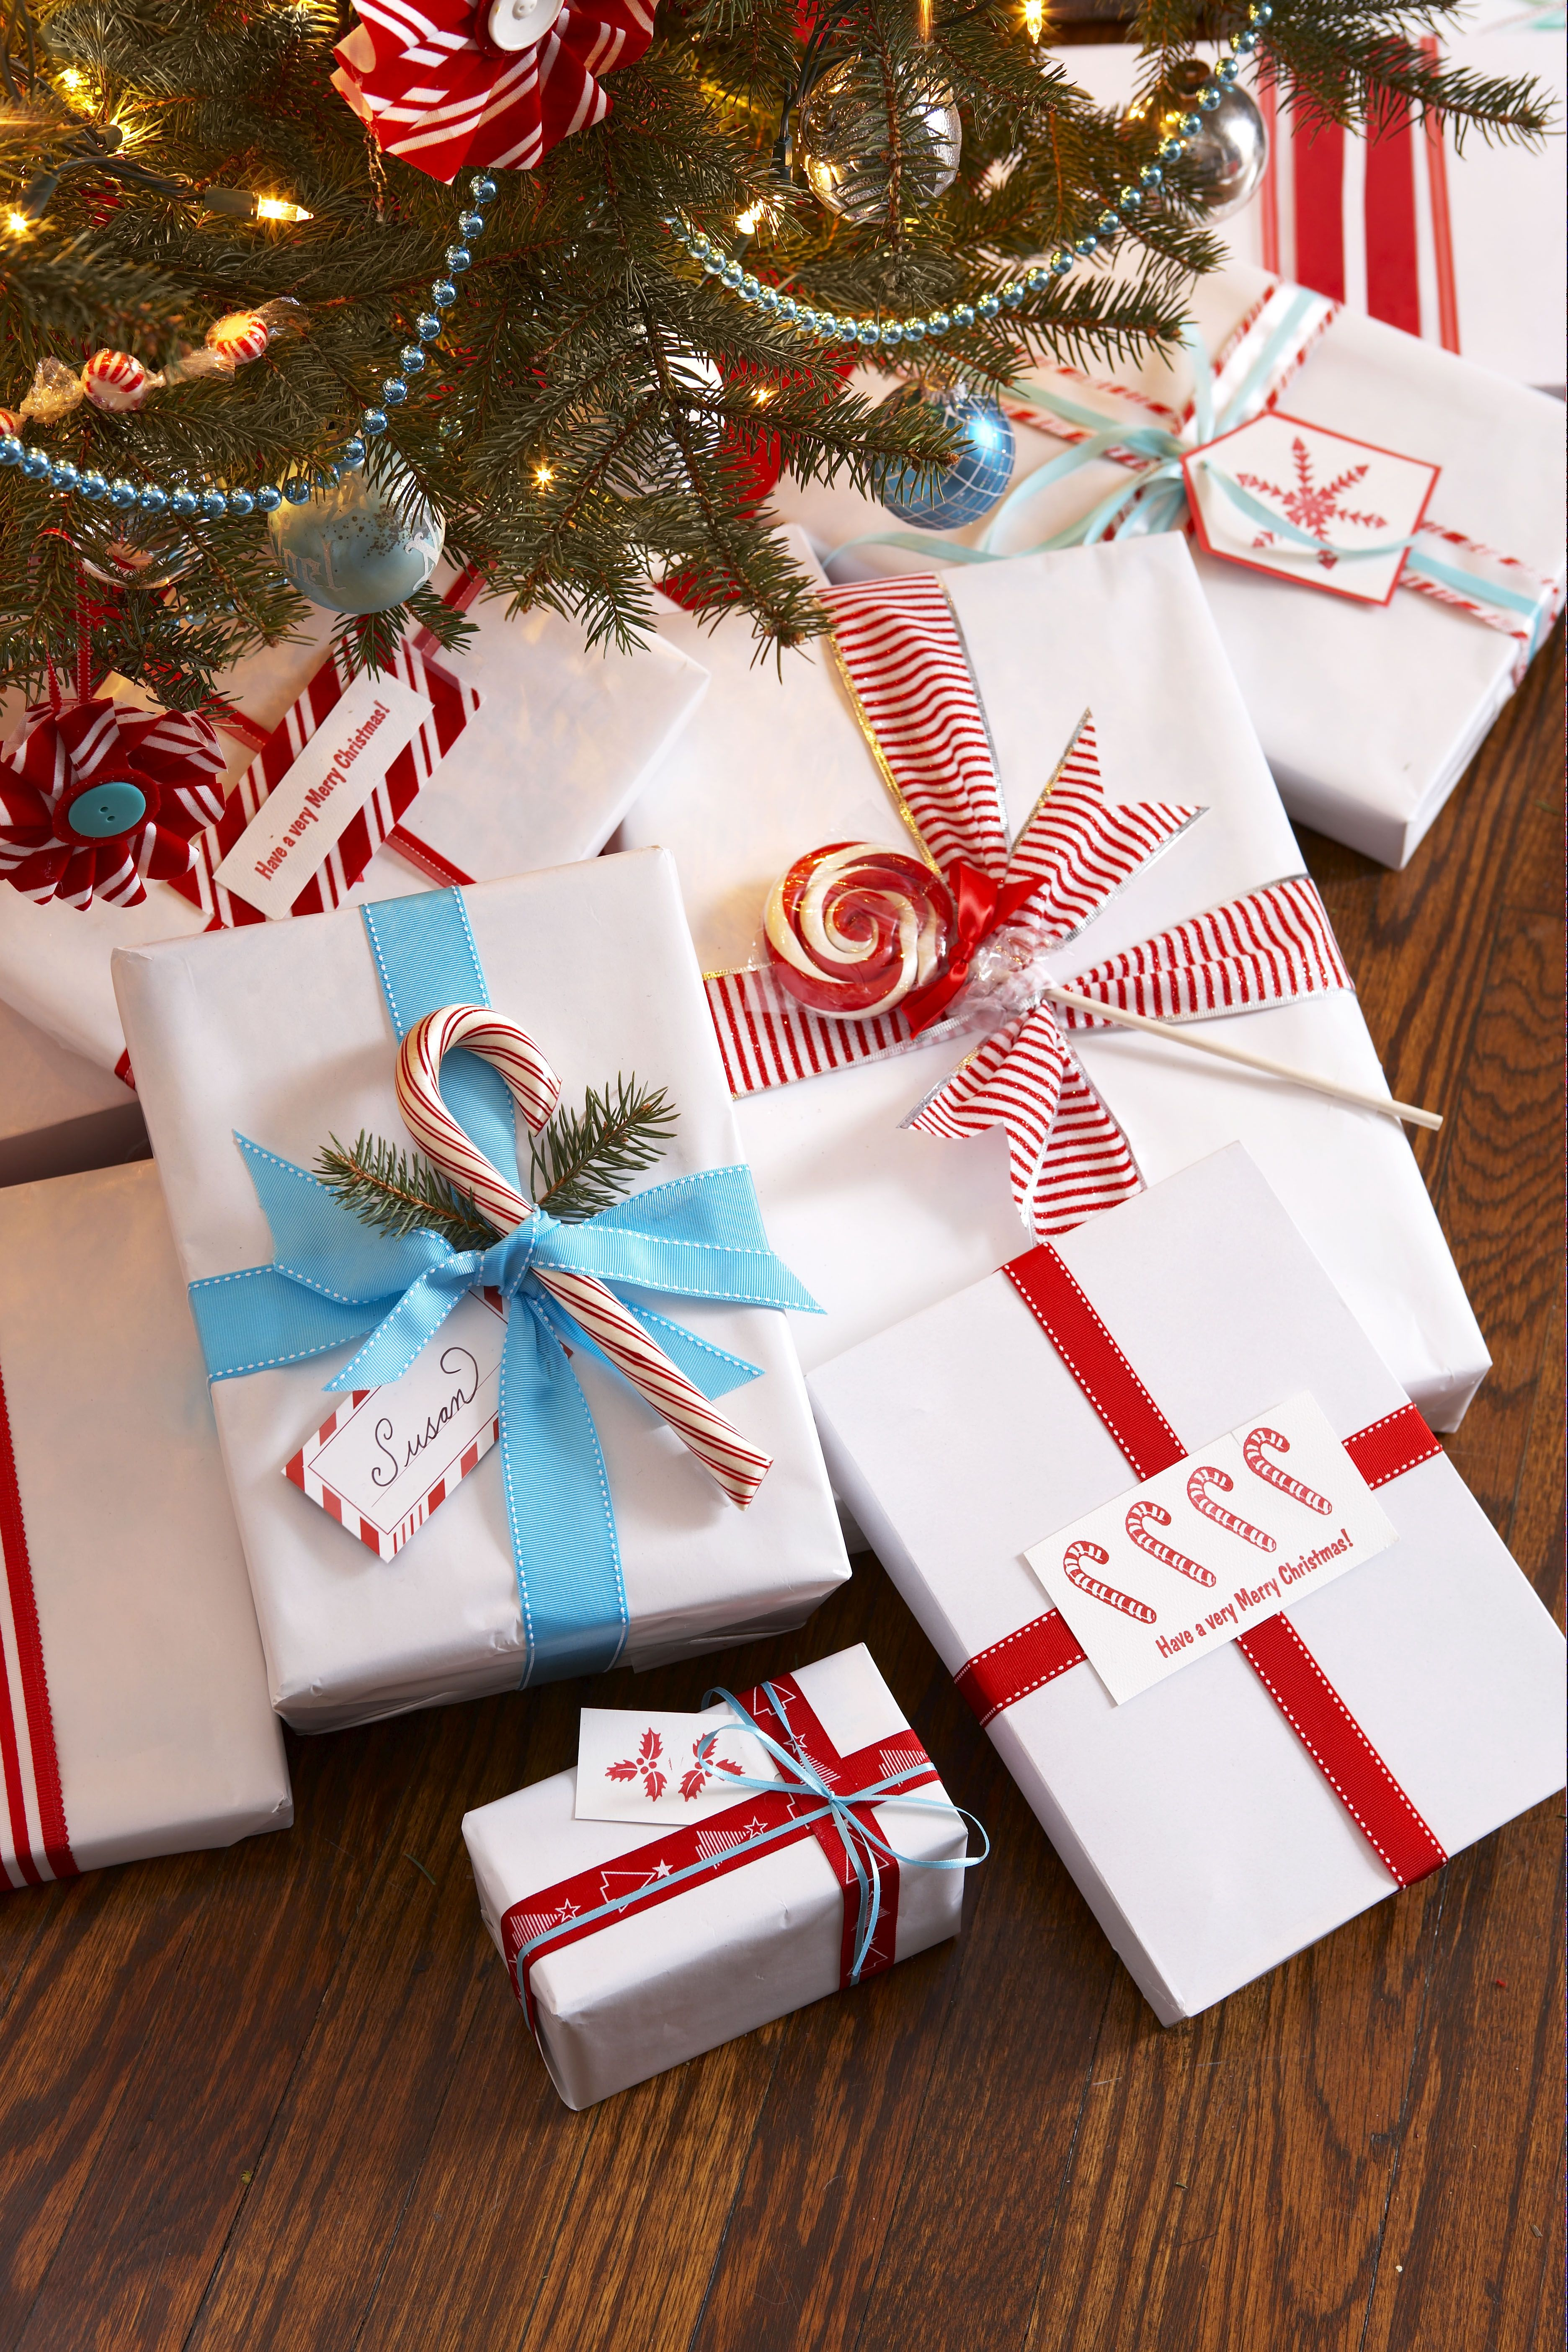 Christian Ladies Christmas Party Ideas Part - 48: Good Housekeeping